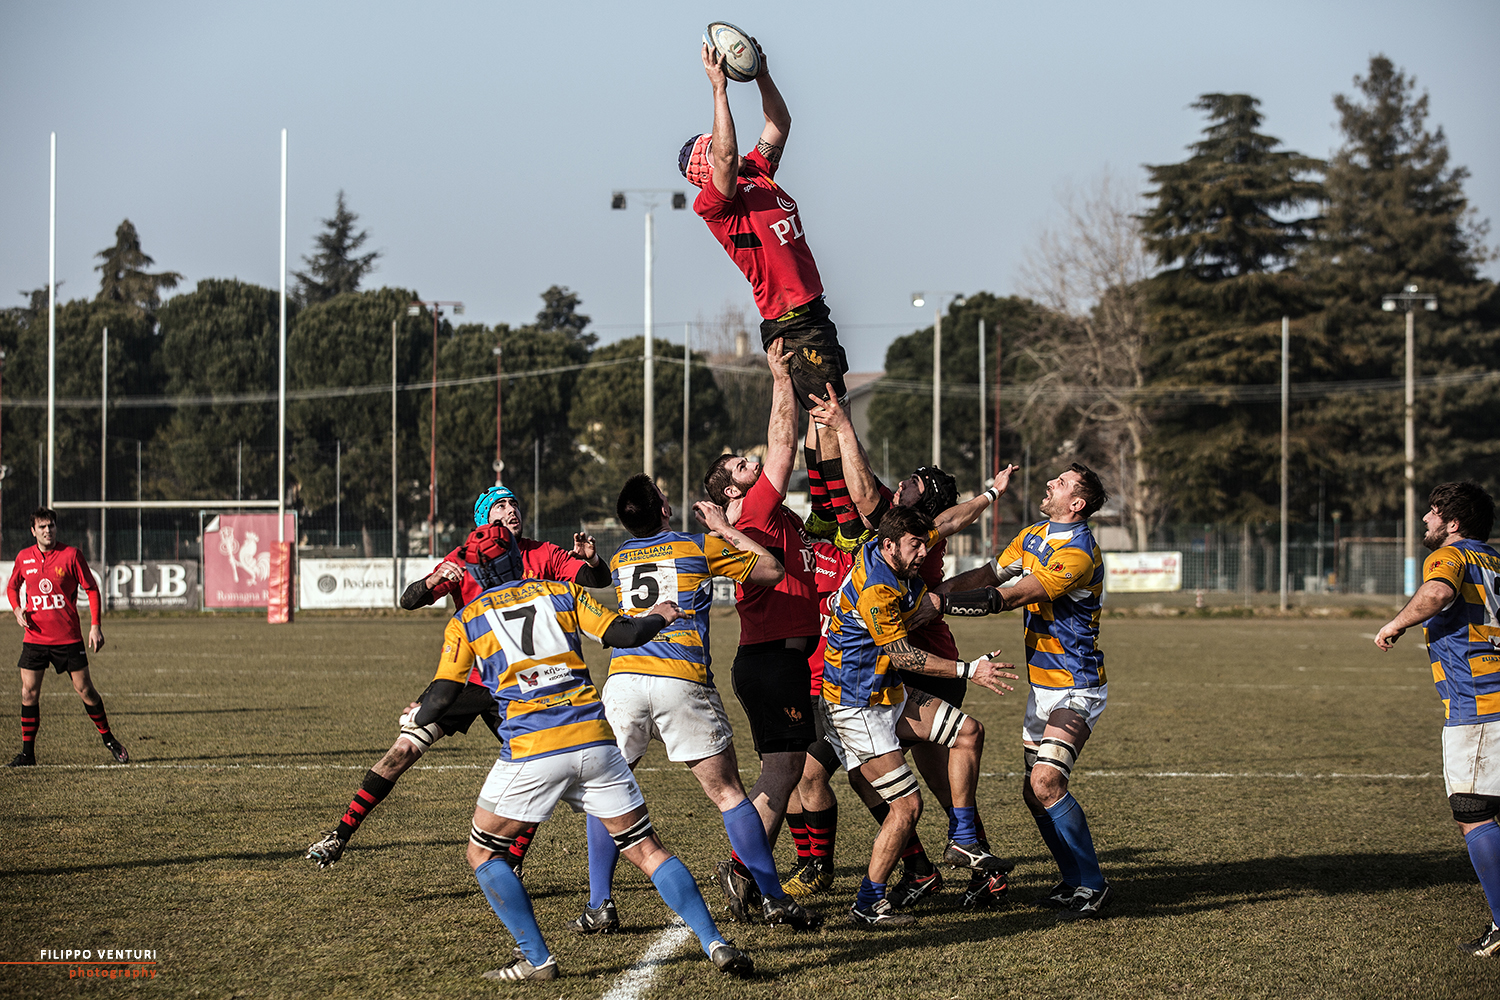 romagna_rugby_parma_06.jpg